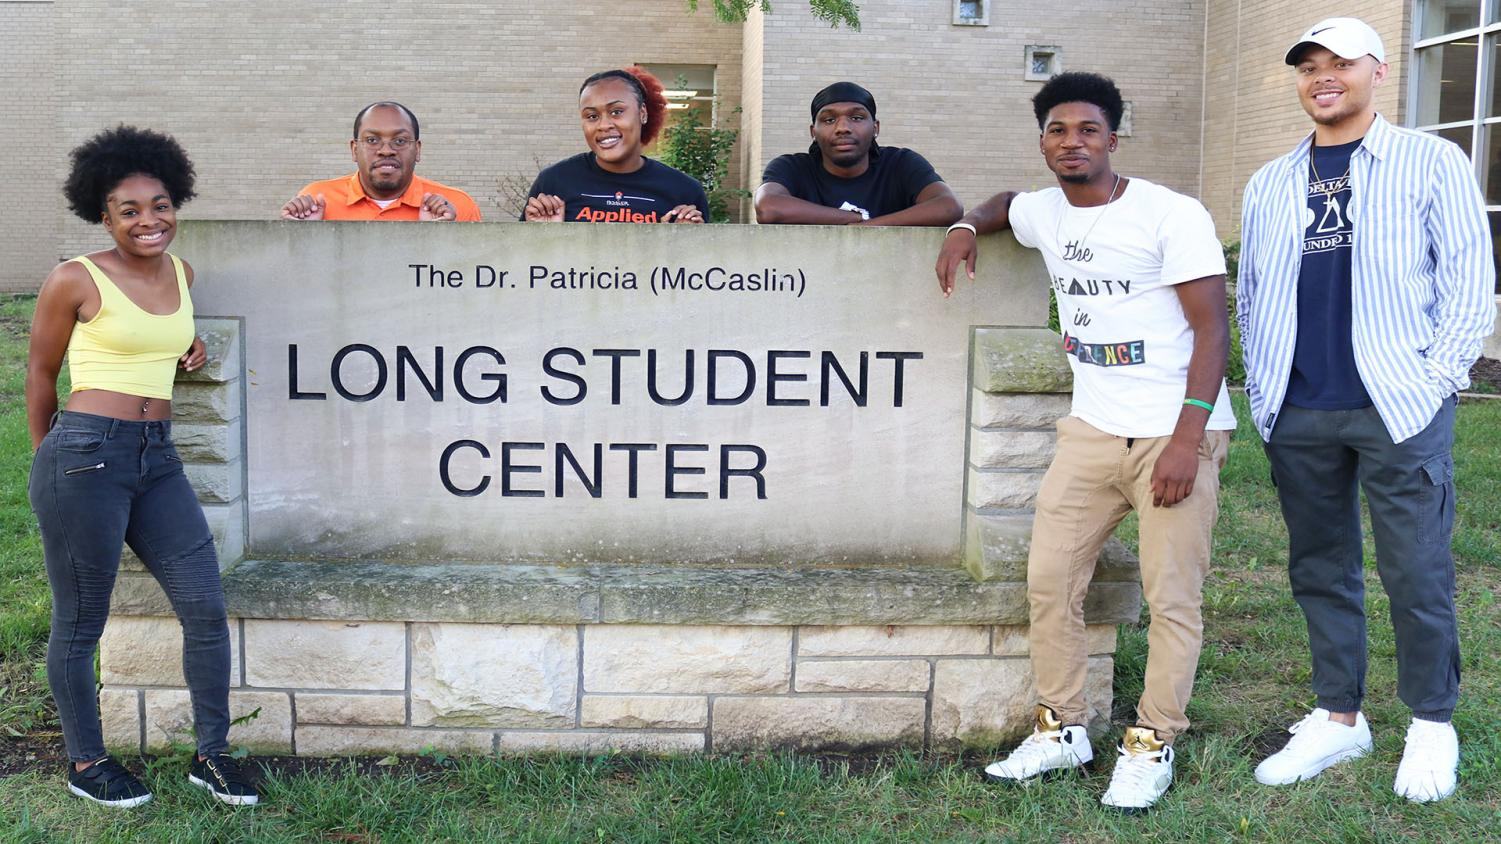 (Left to Right) President and senior Myan Elrington, Coordinator of Inclusion and Wellness Paul Ladipo, junior Secretary Daisey Ewansiha, Public Relations Nico Taylor, Treasurer Fabien Franck-Love and Vice President Grant Boehm represent the 2019-20 Mungano organization. Mungano hosts events with other organization on campus as well as sport teams.